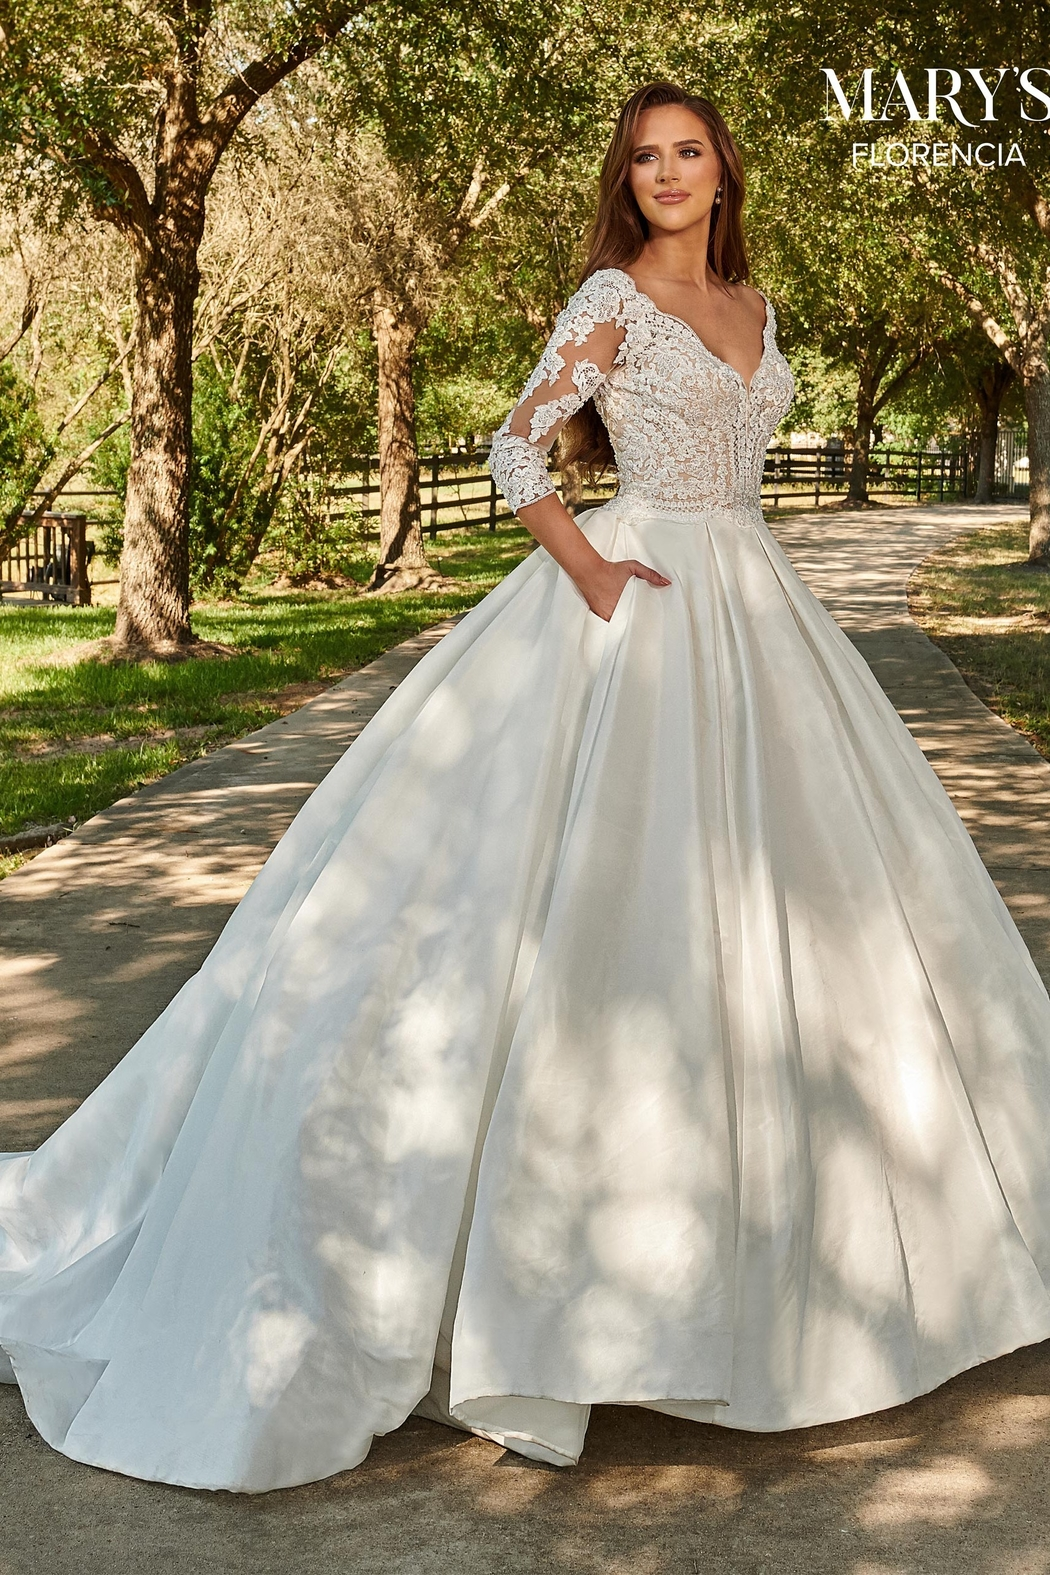 Mary's Bridal Florencia Bridal Gown in Ivory Color - Main Image